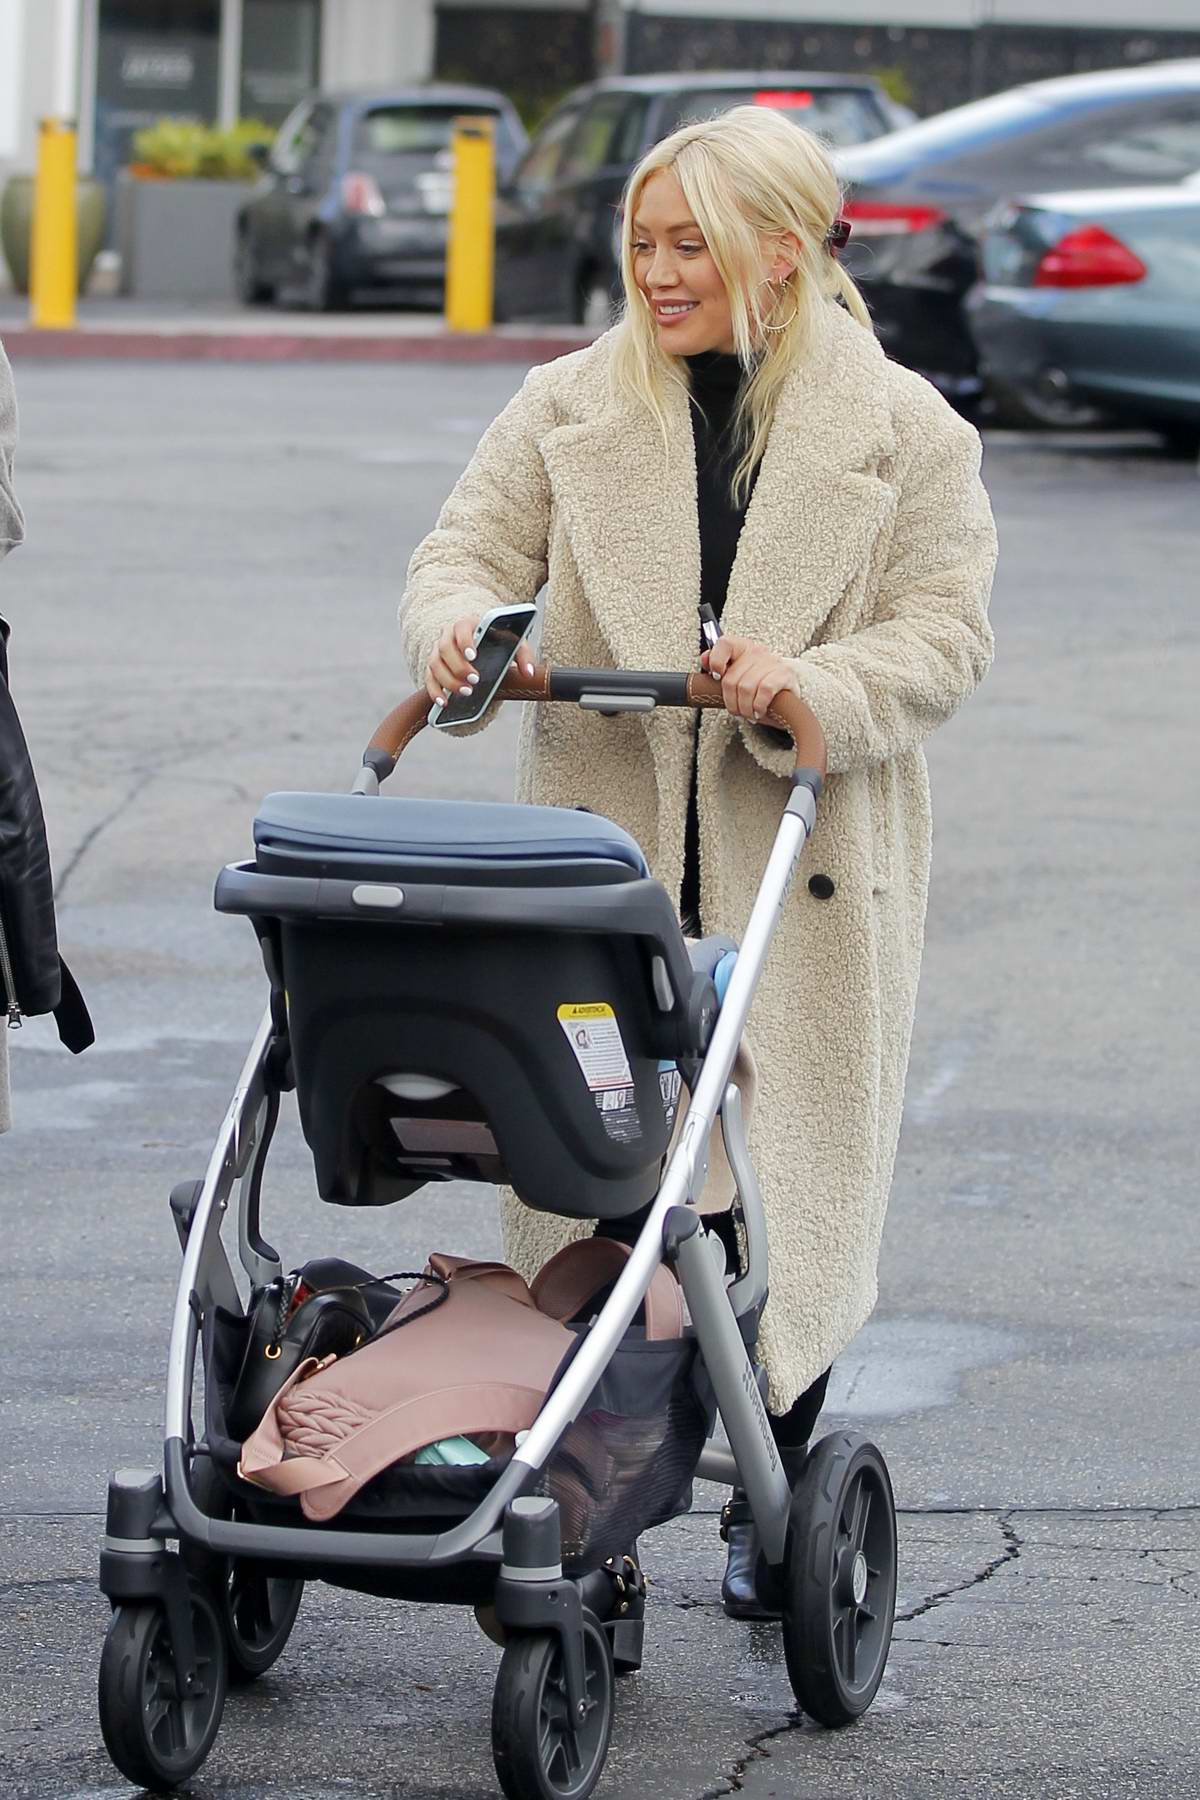 Hilary Duff is all smiles while out for some shopping with her daughter and son in Beverly Hills, Los Angeles